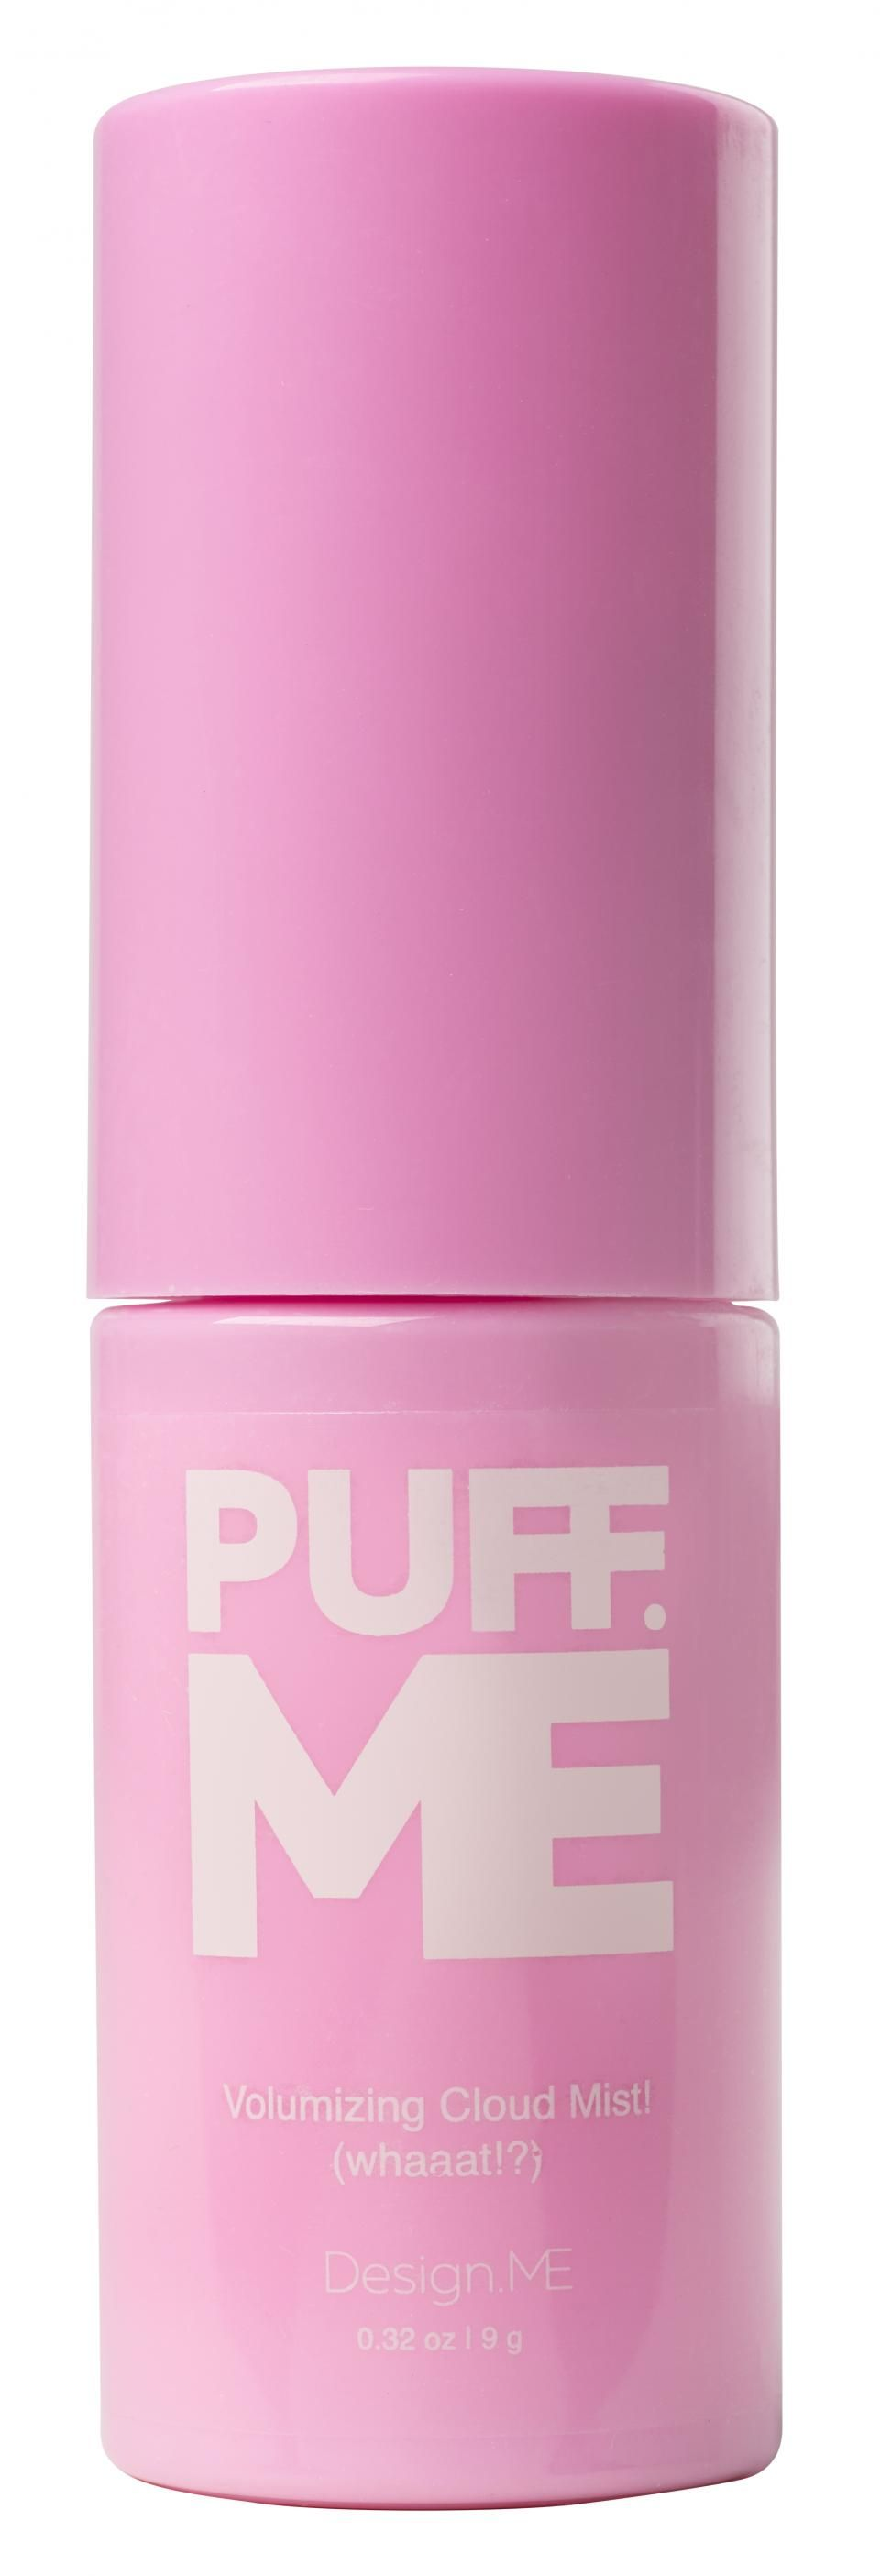 Introducing Puff Me Volumizing Cloud Mist From Design A New Breed Of